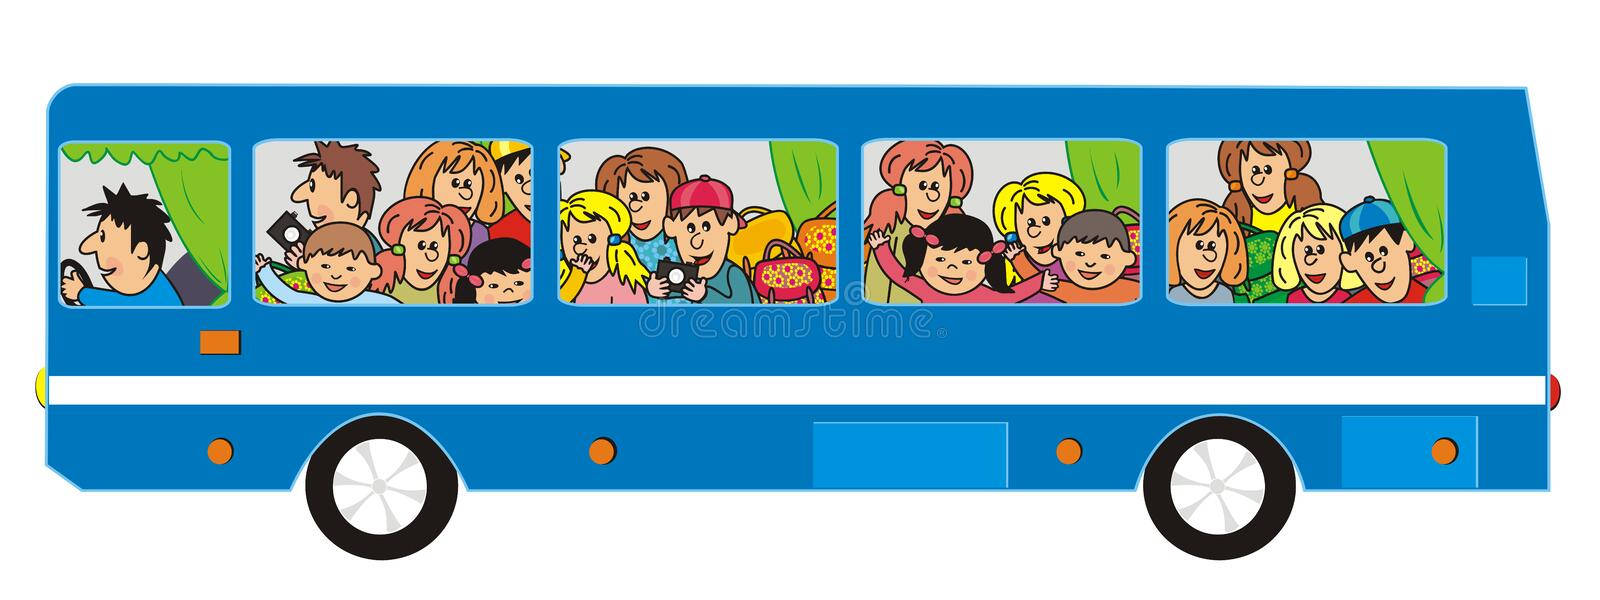 Blue bus and group of kids and adults. Isolated funny illustration, vector icon. People go by bus on the trip royalty free illustration